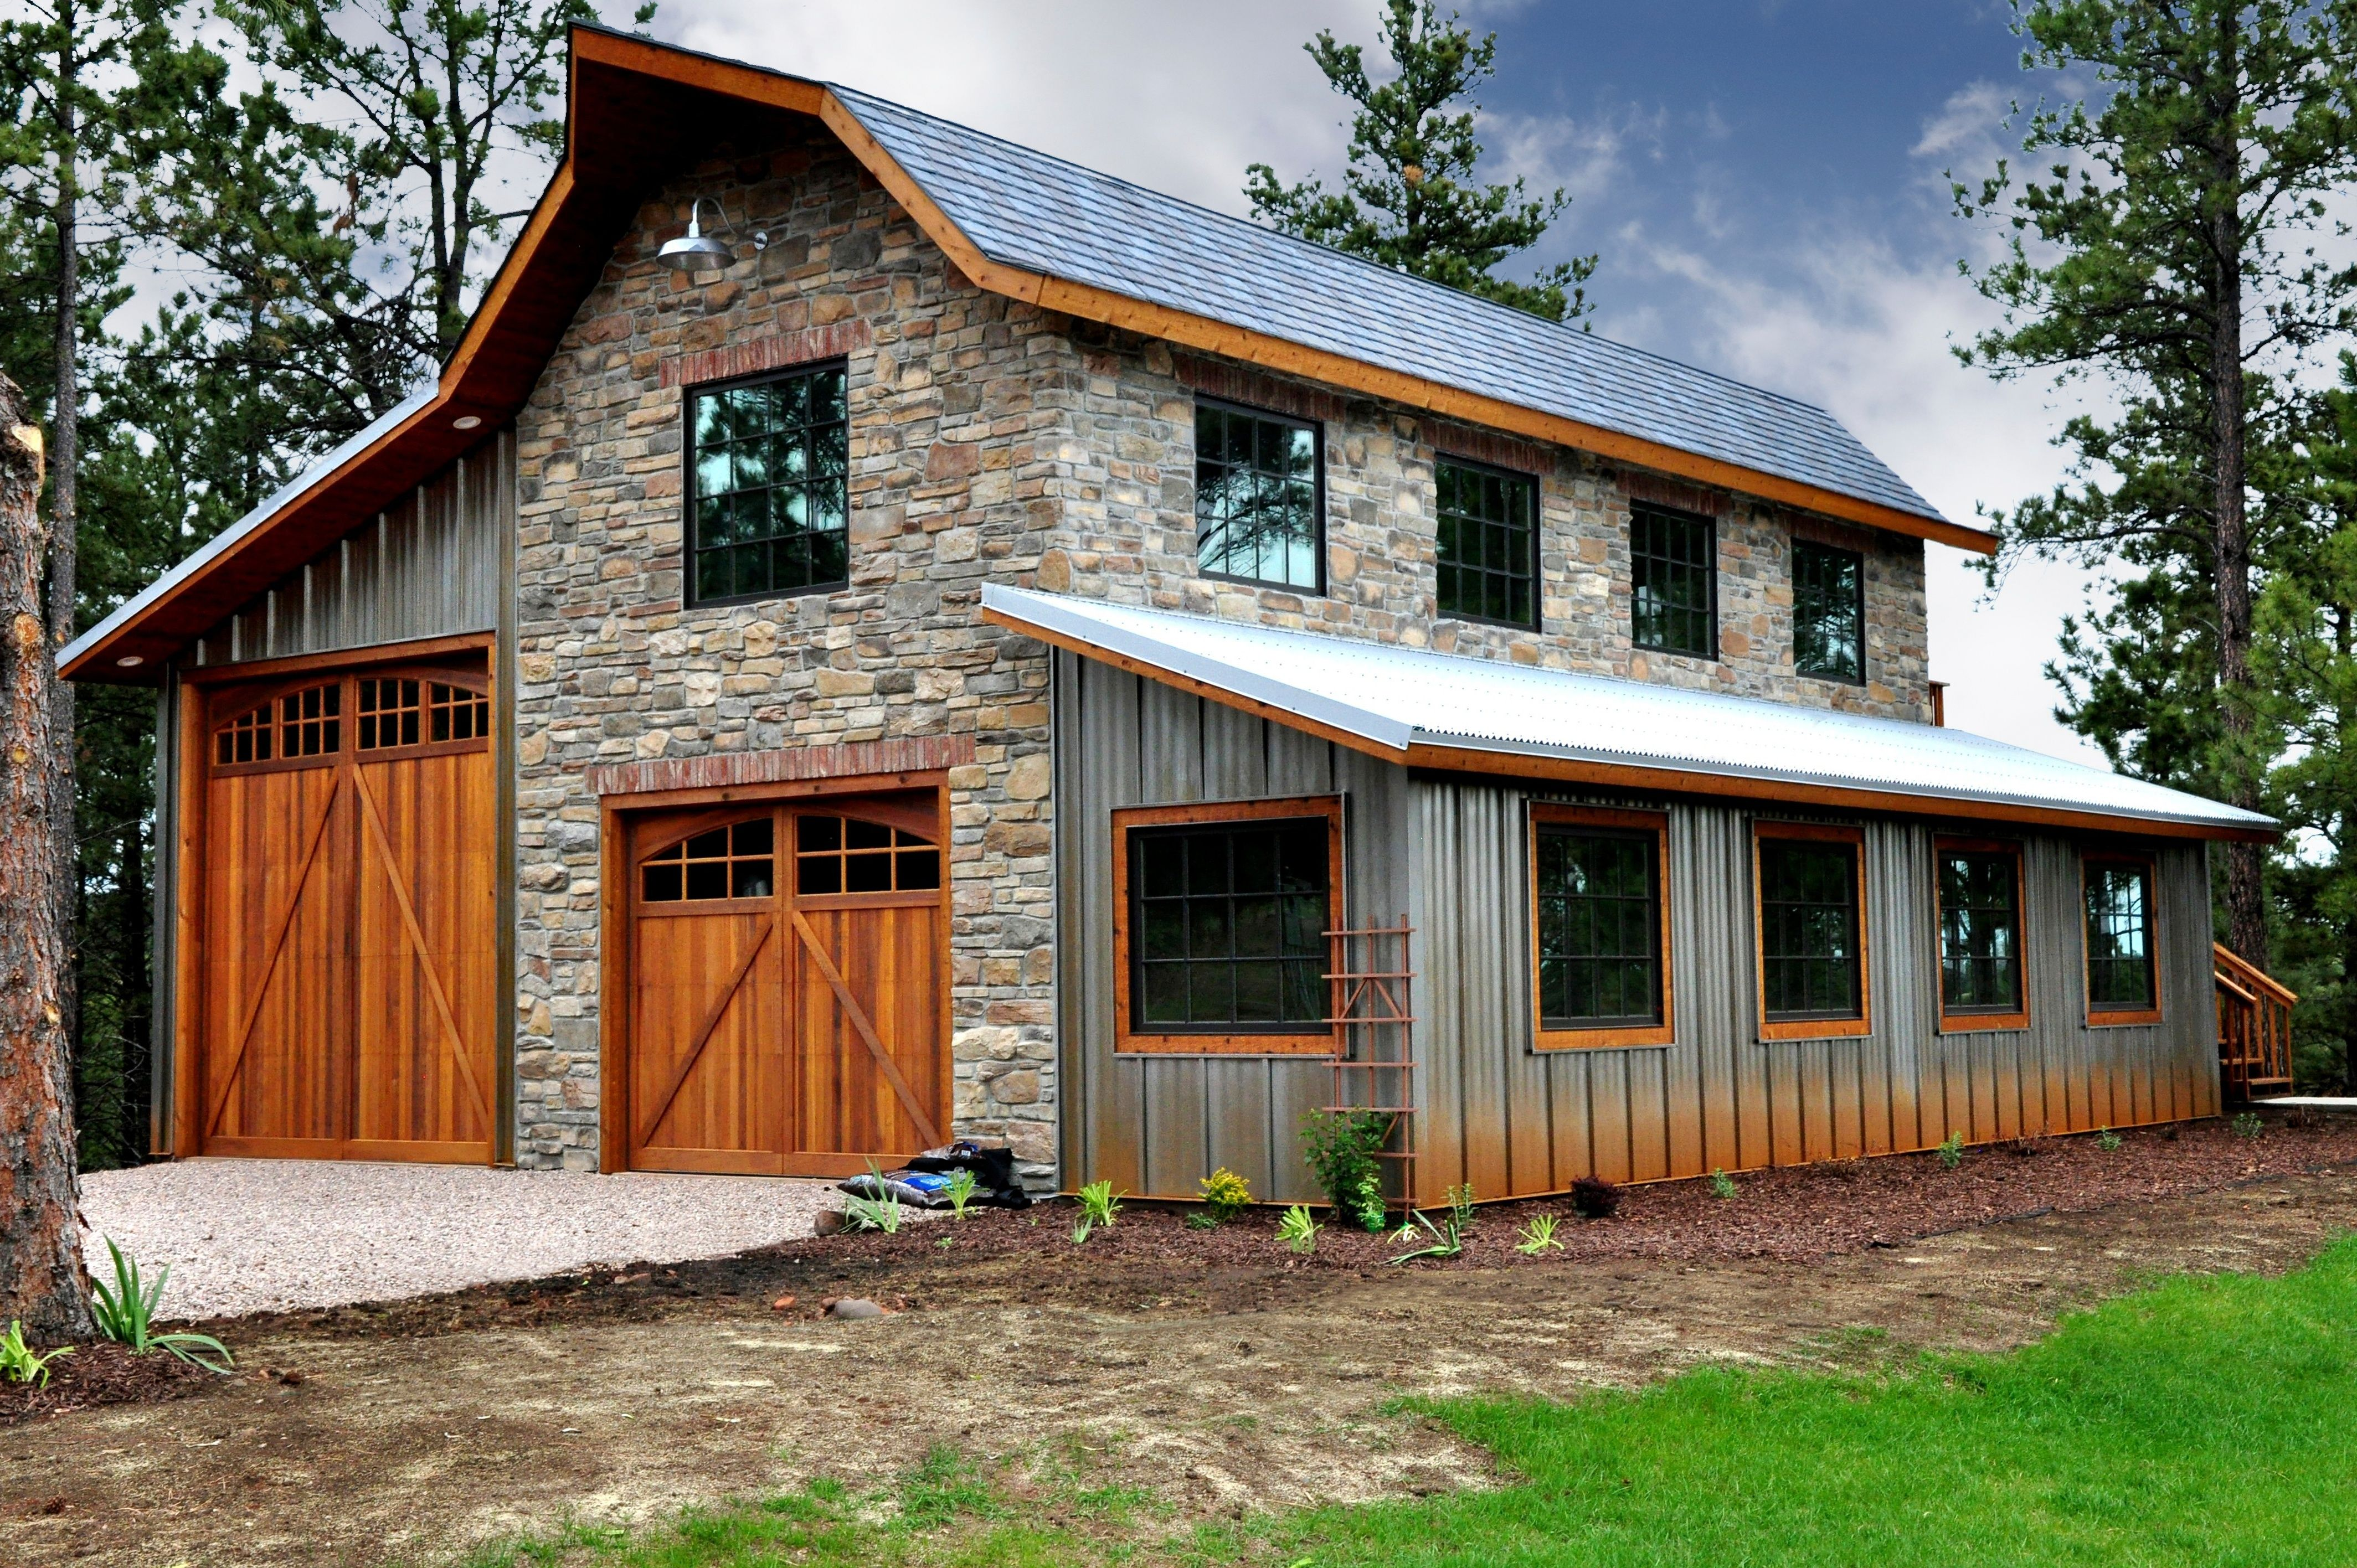 Best Ultra Batten Siding On Rustic Barn And Home Barn Style 400 x 300